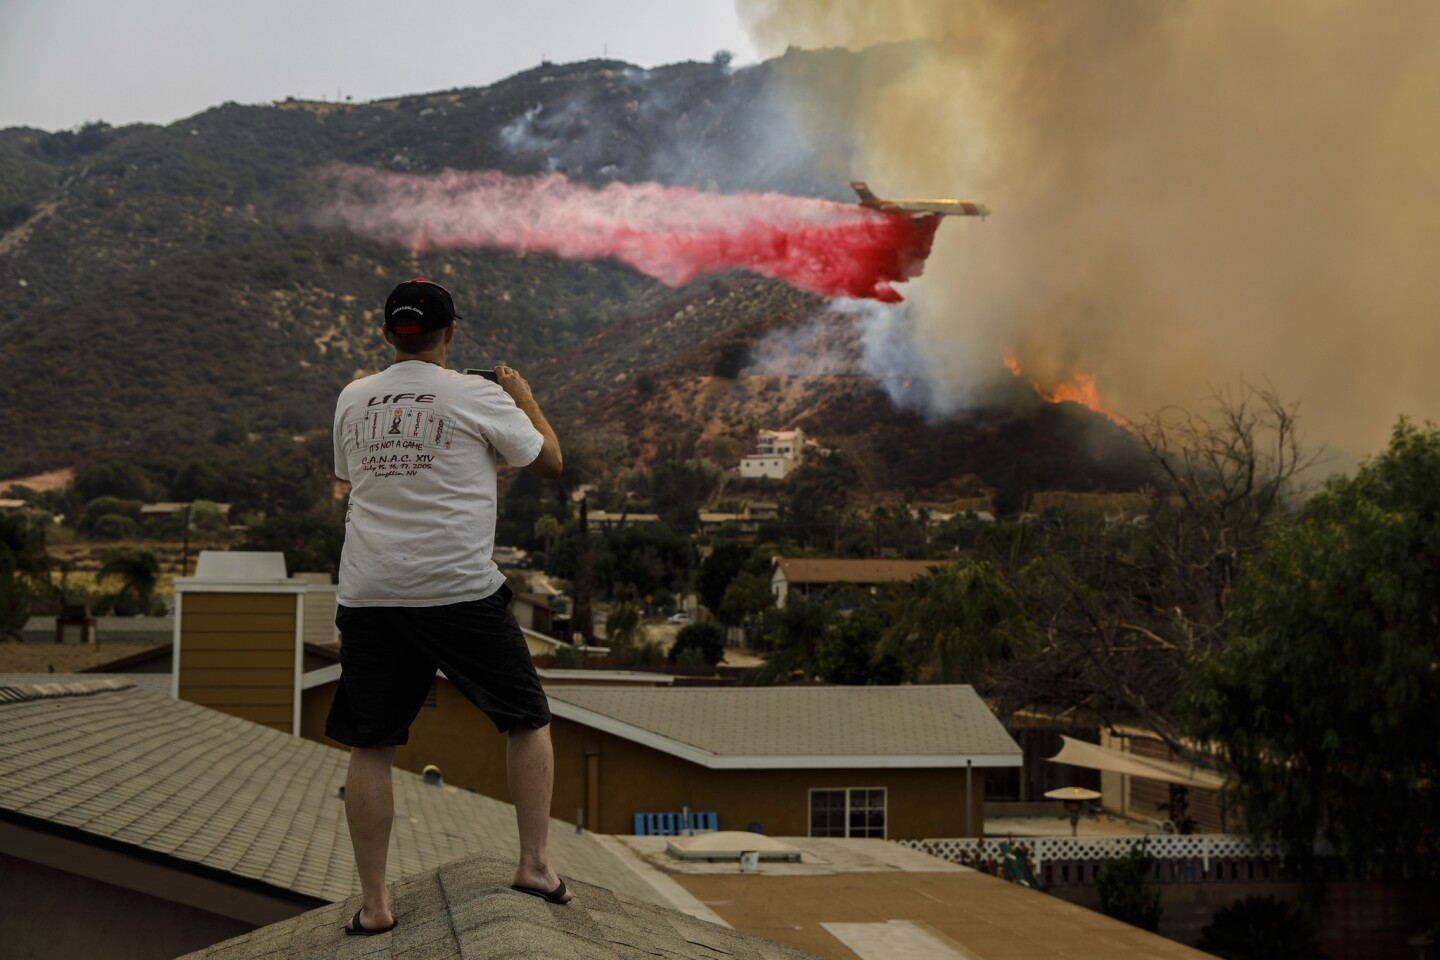 Jeff Qualls stands on his roof to watch an air tanker drop fire retardant on flames from the Holy fire as it make its way down the hillside in Lake Elsinore, Calif.